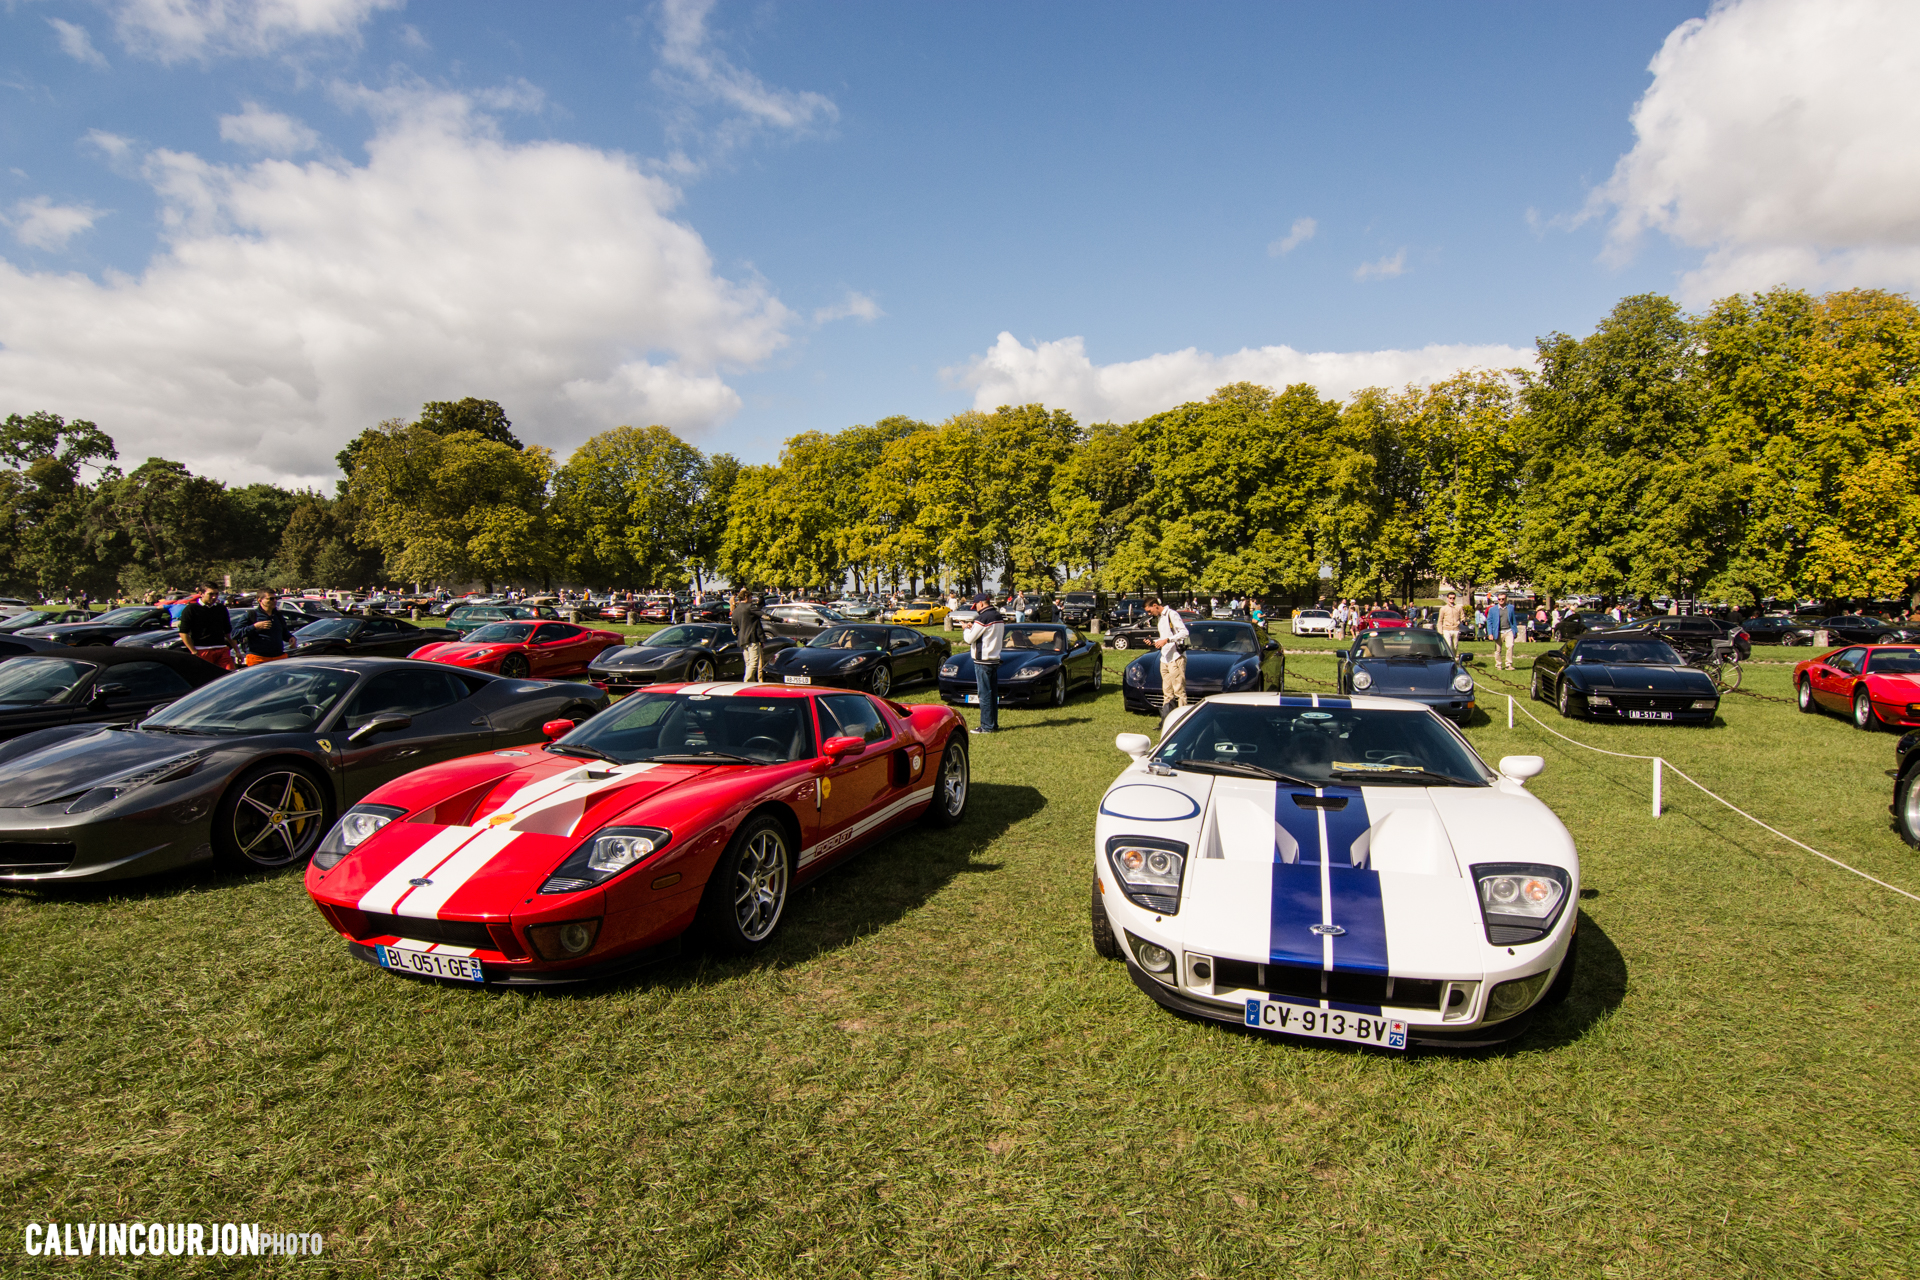 parking Ford GT - Chantilly 2015 – photo Calvin Courjon